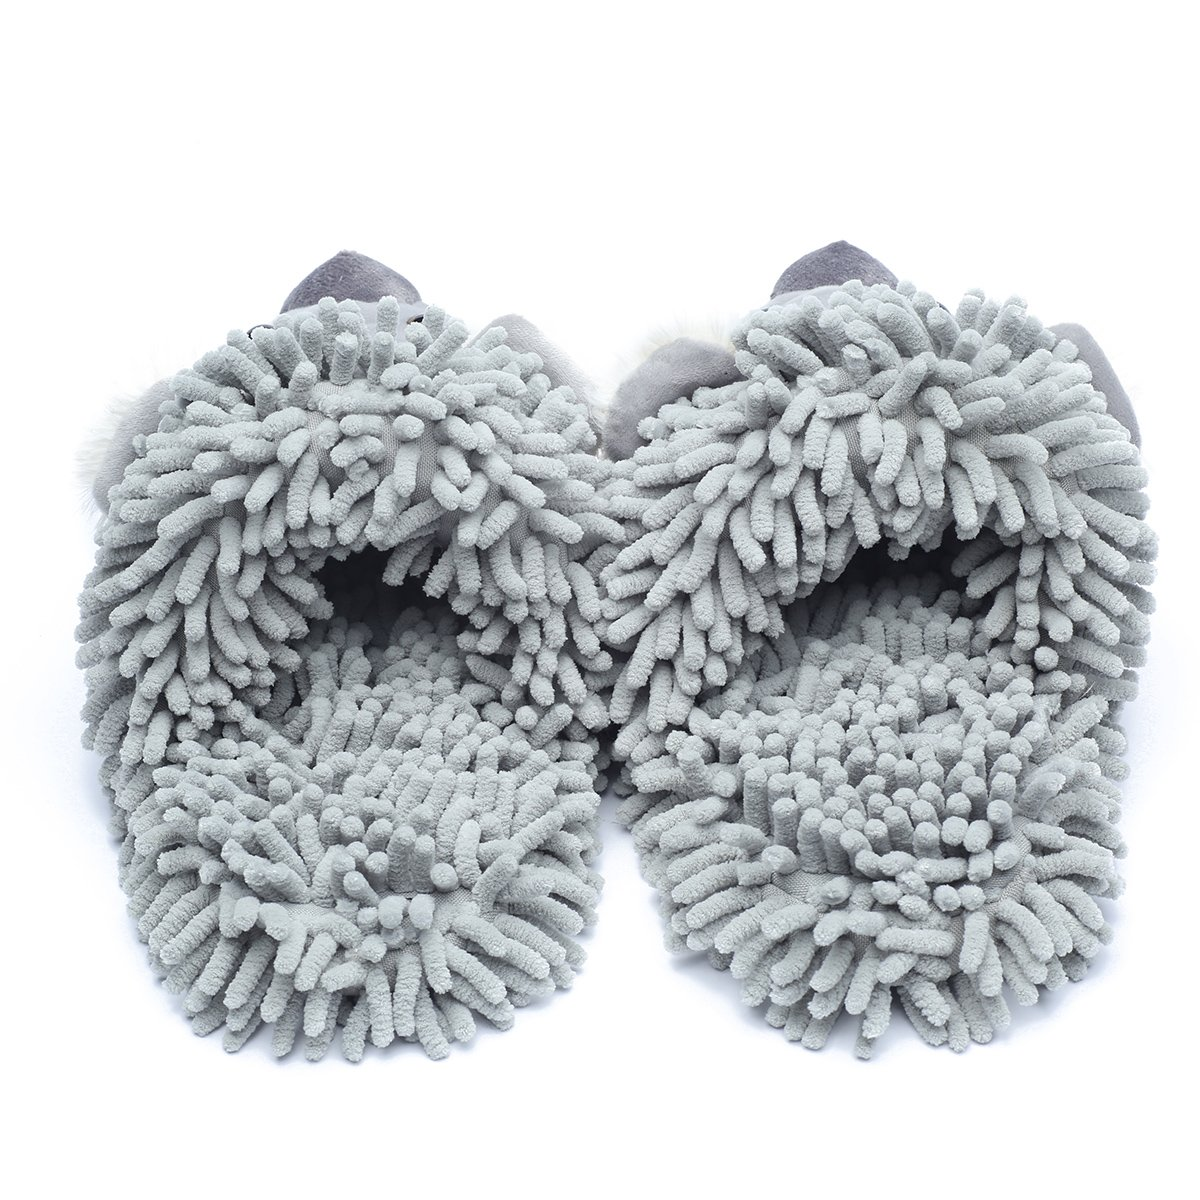 Ofoot Winter Warm Plush Anti-slip Indoor Animal Slippers for Women and Men (M/L 8-10 B(M) US, Grey(Koala)) by Ofoot (Image #3)